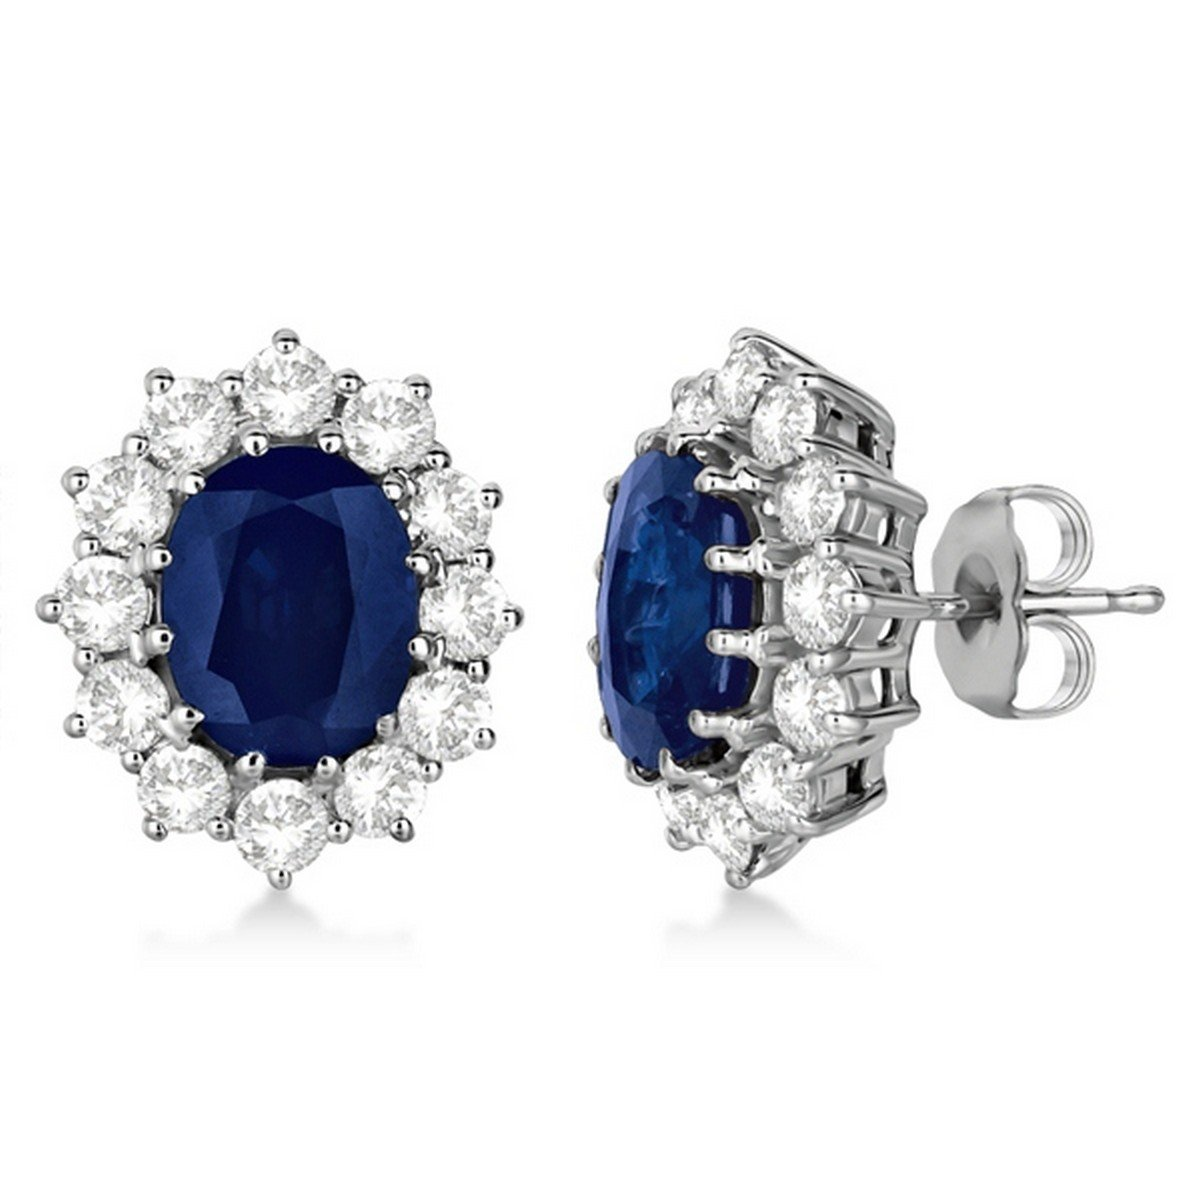 7.10ctw 18k Gold Oval Blue Sapphire and Diamond Earrings